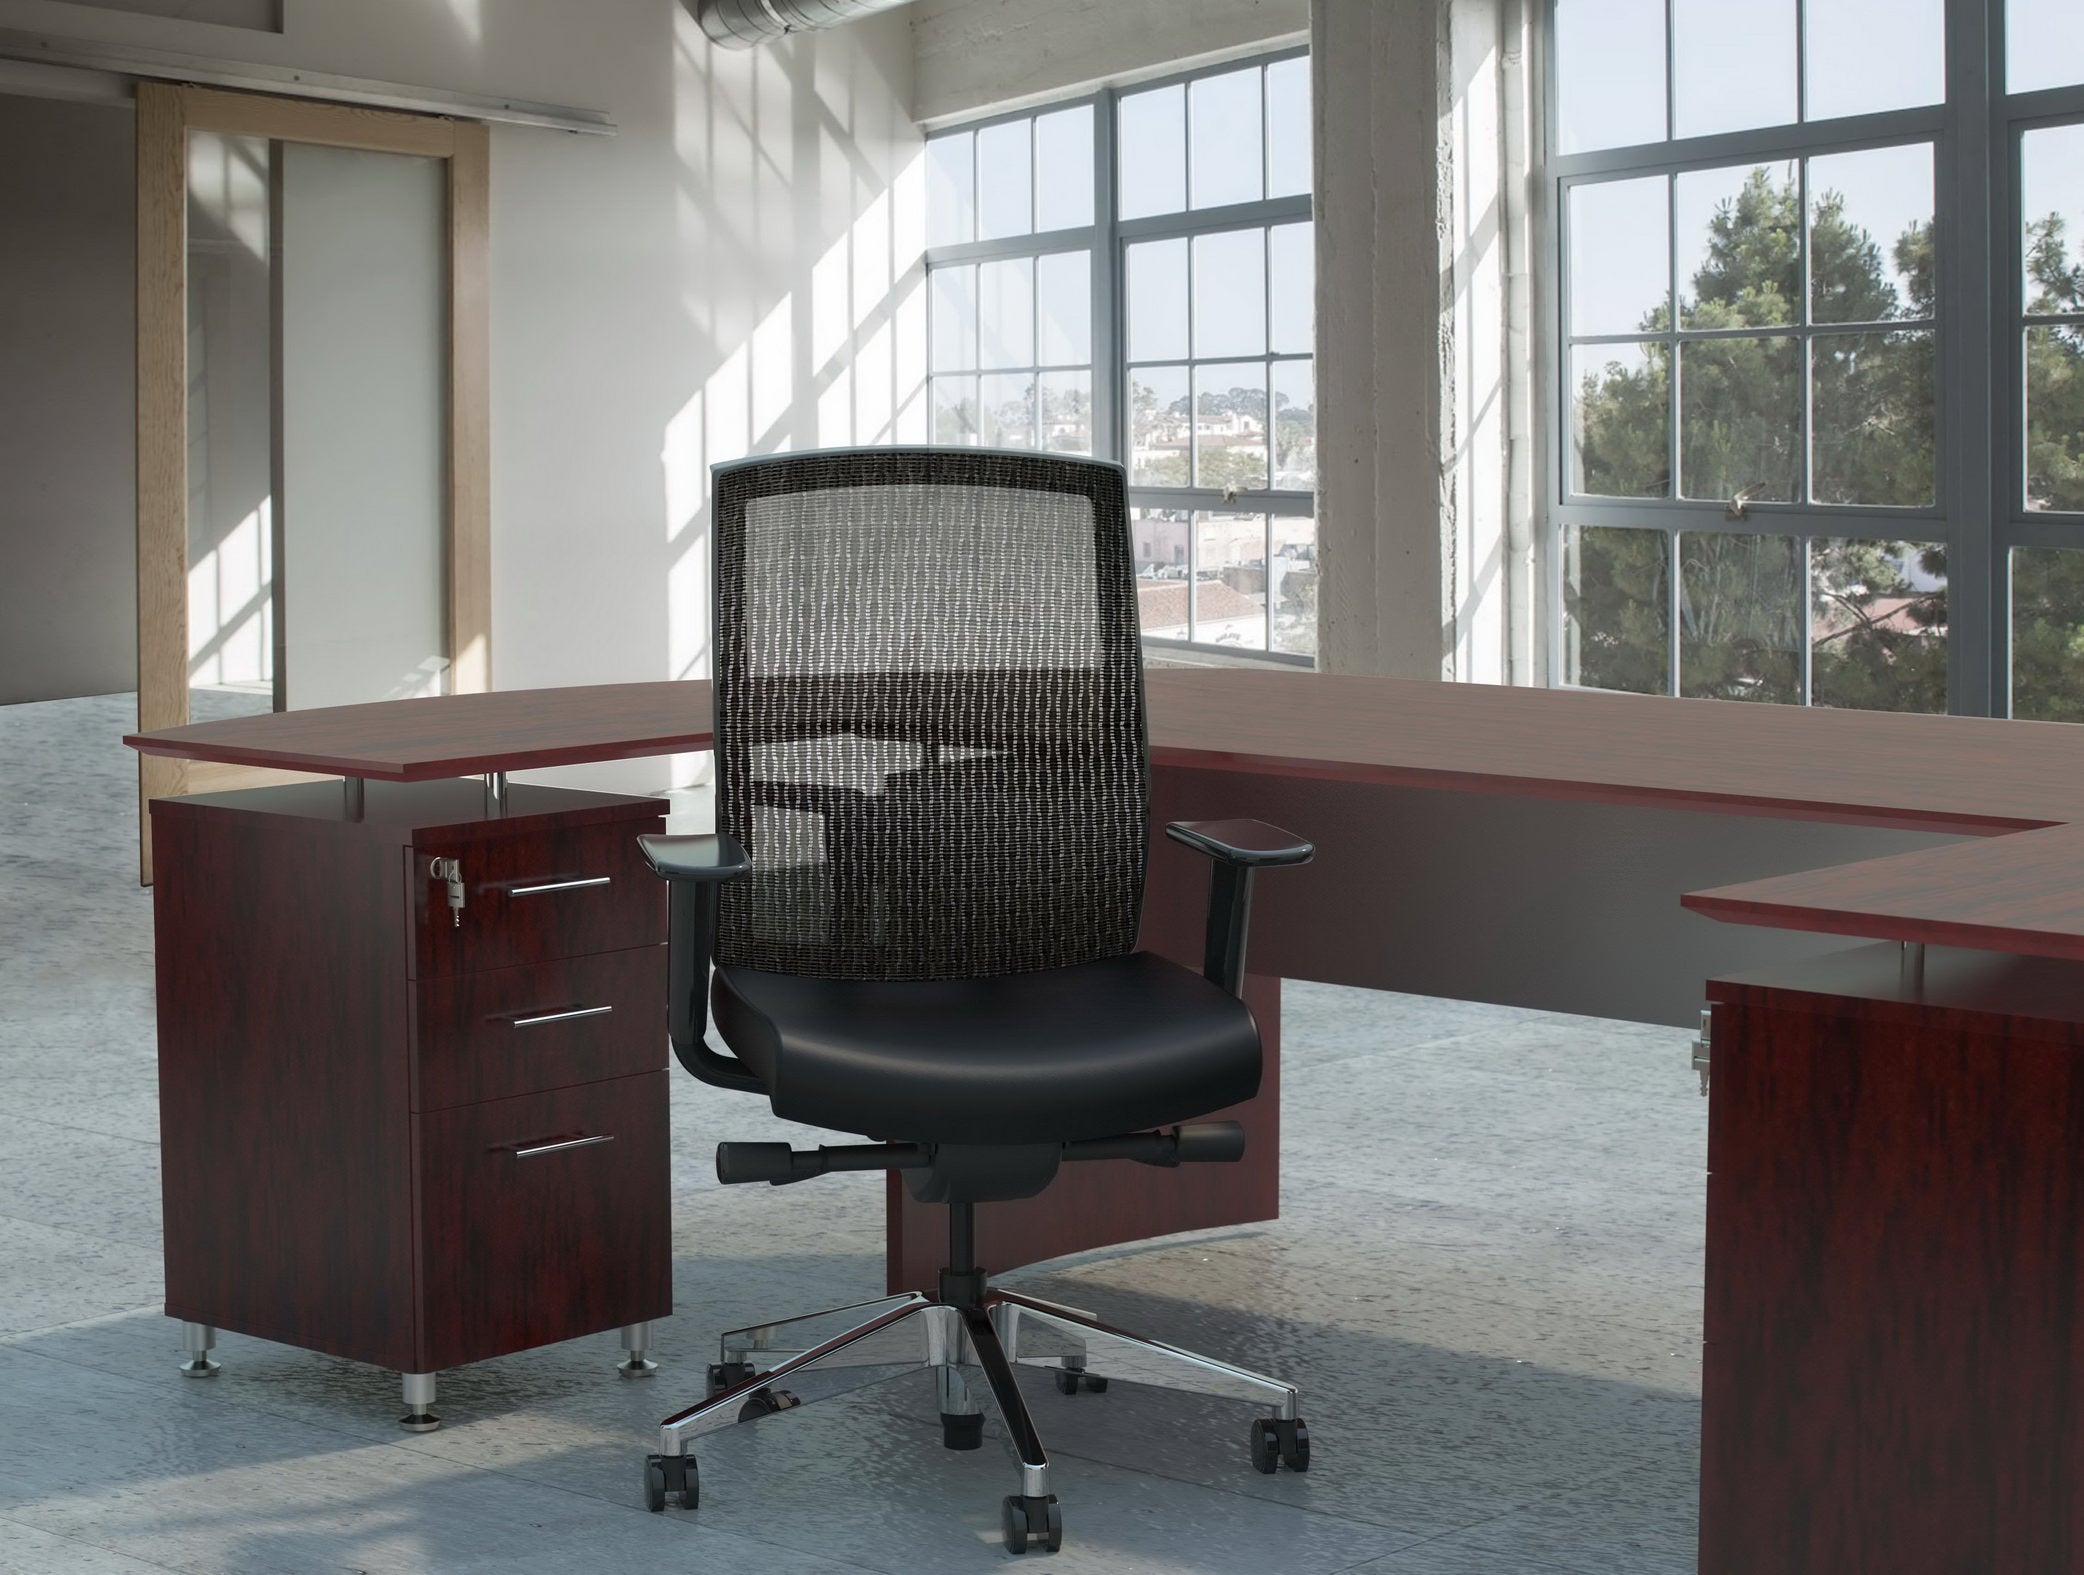 Leather vs Mesh Office Chairs: What's the Difference?